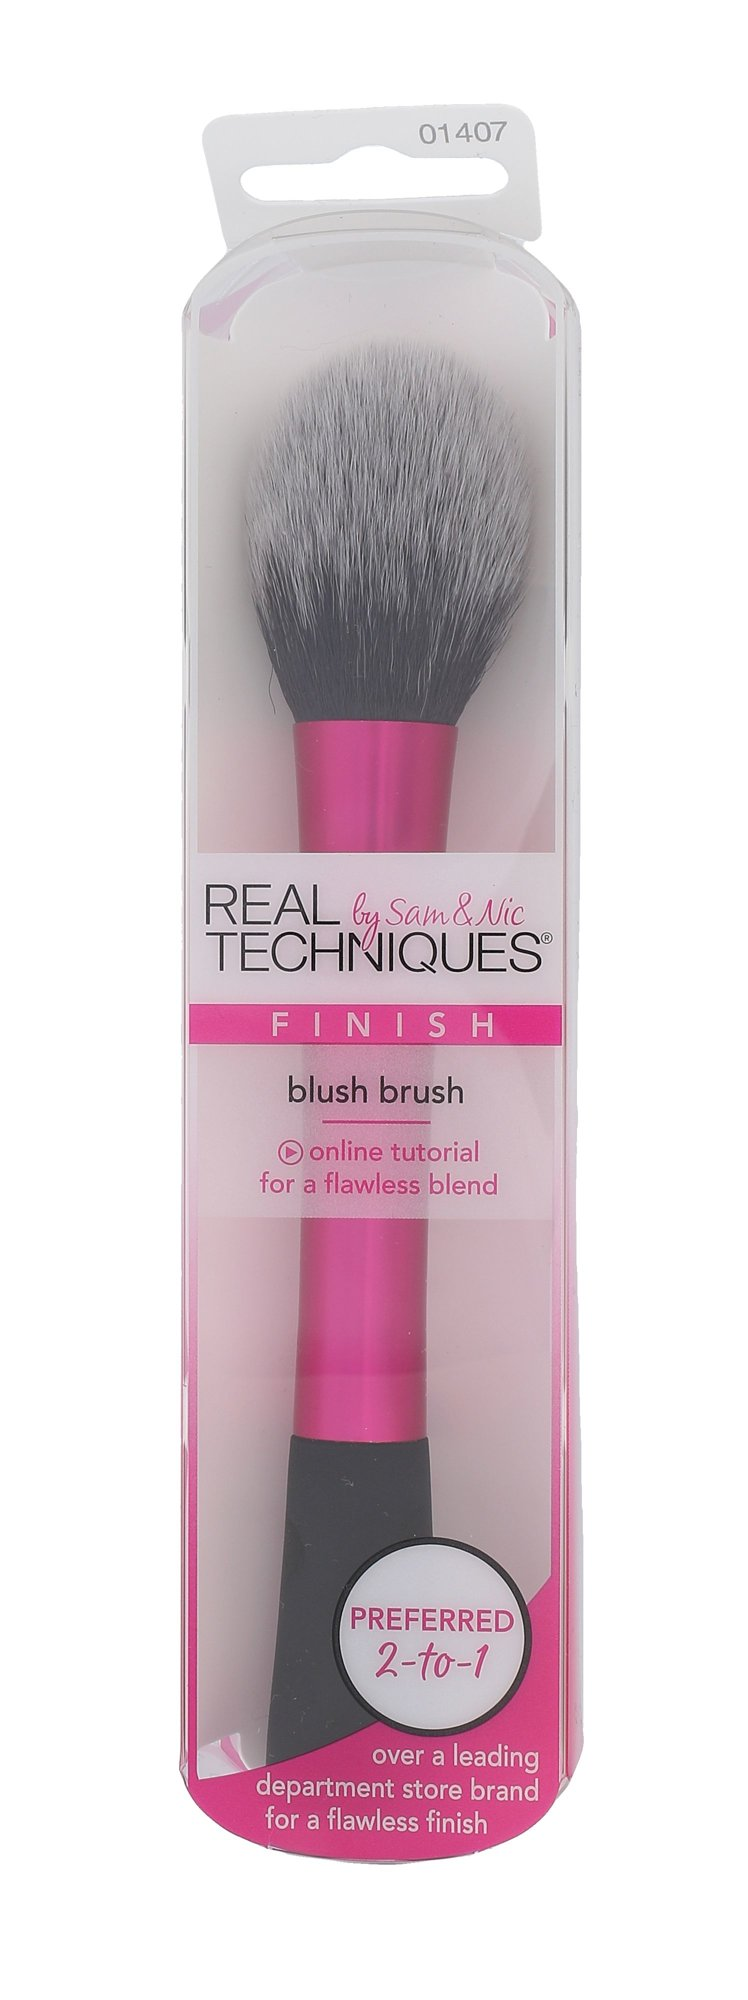 Real Techniques Finish Blush Brush Cosmetic 1ks